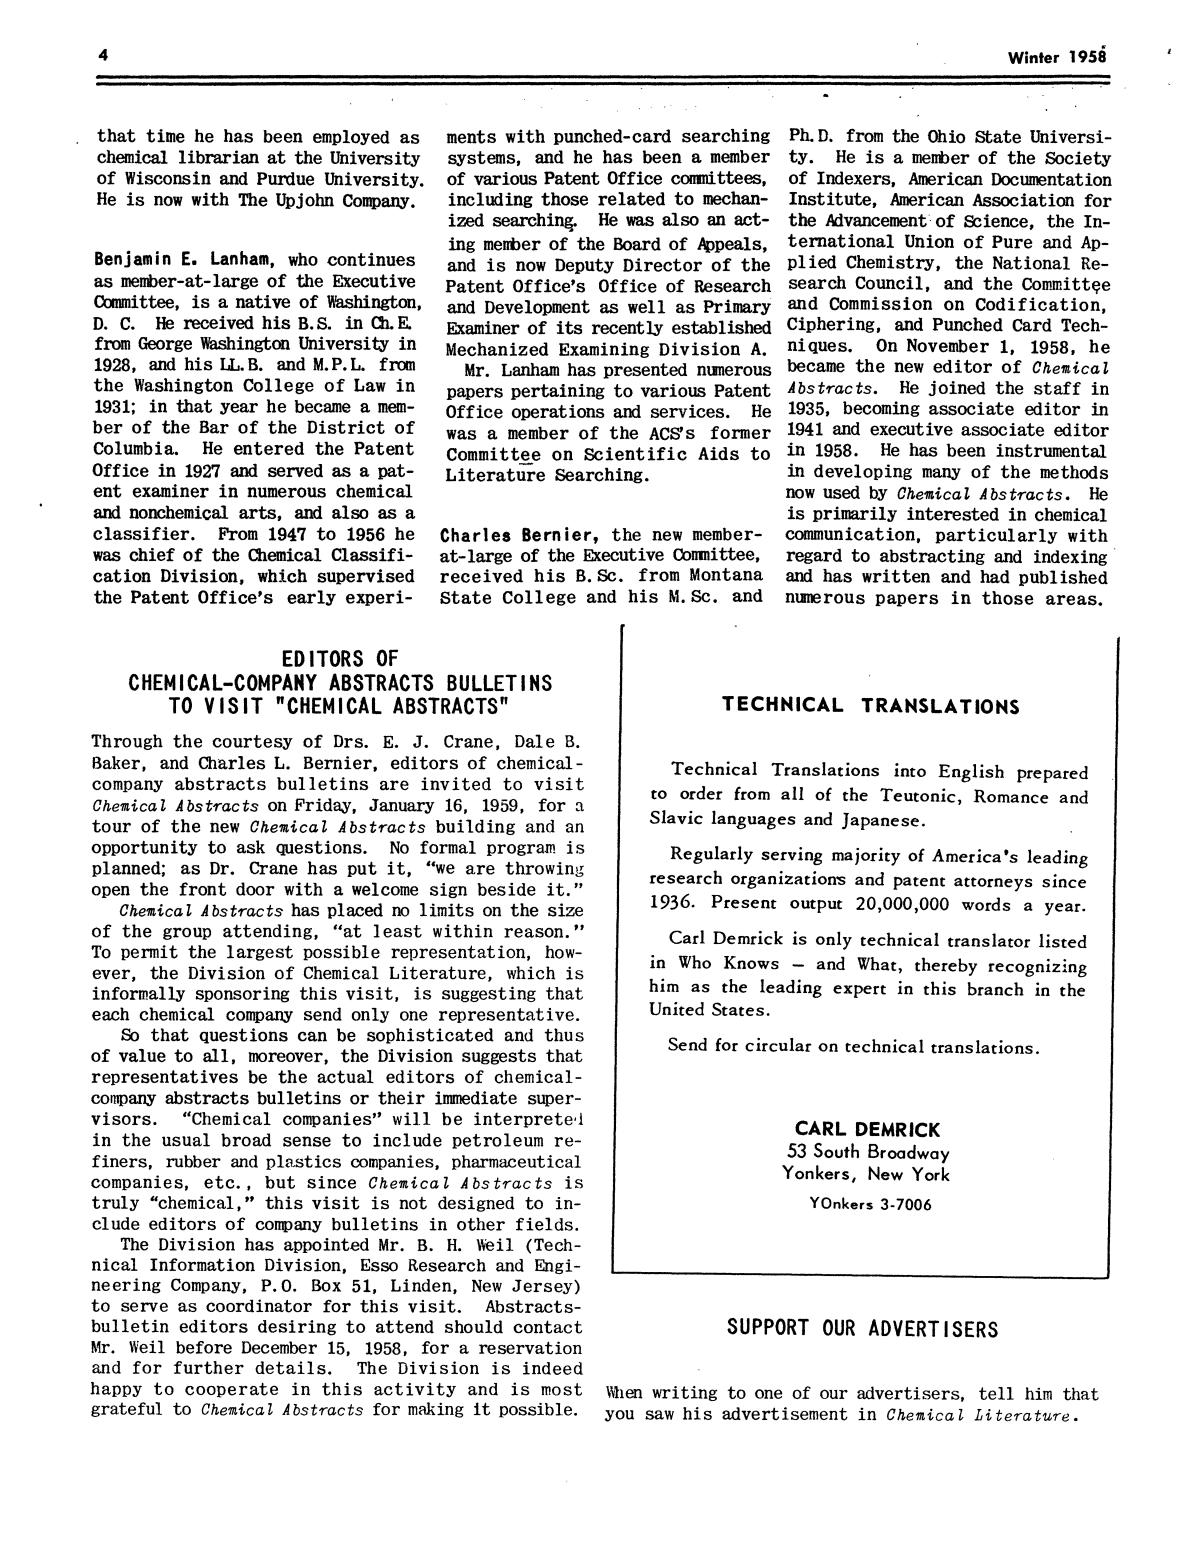 Chemical Literature, Volume 10, Number 4, Winter 1958                                                                                                      4